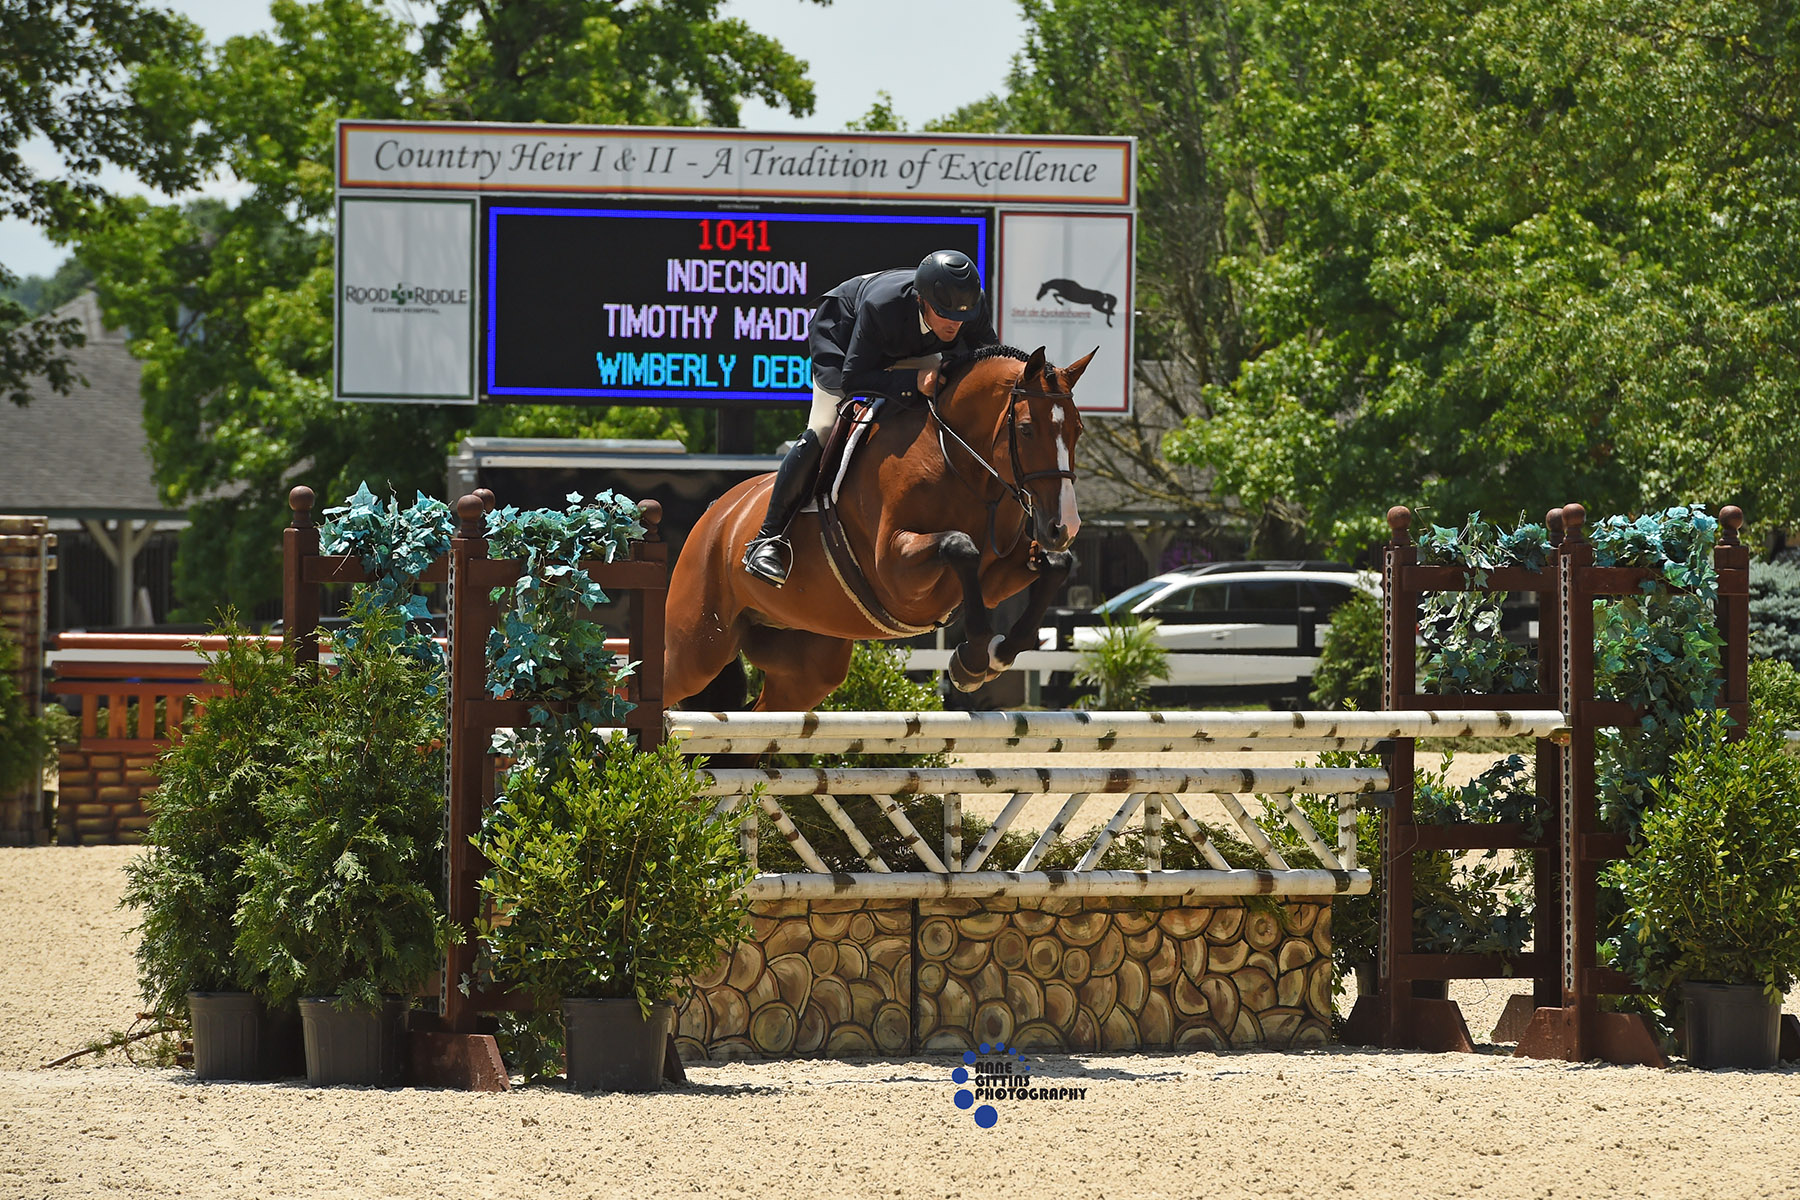 Timothy Maddrix and Indecision won the $30,000 USHJA International Hunter Derby  during Week II in 2018. Photo by Anne Gittins Photography